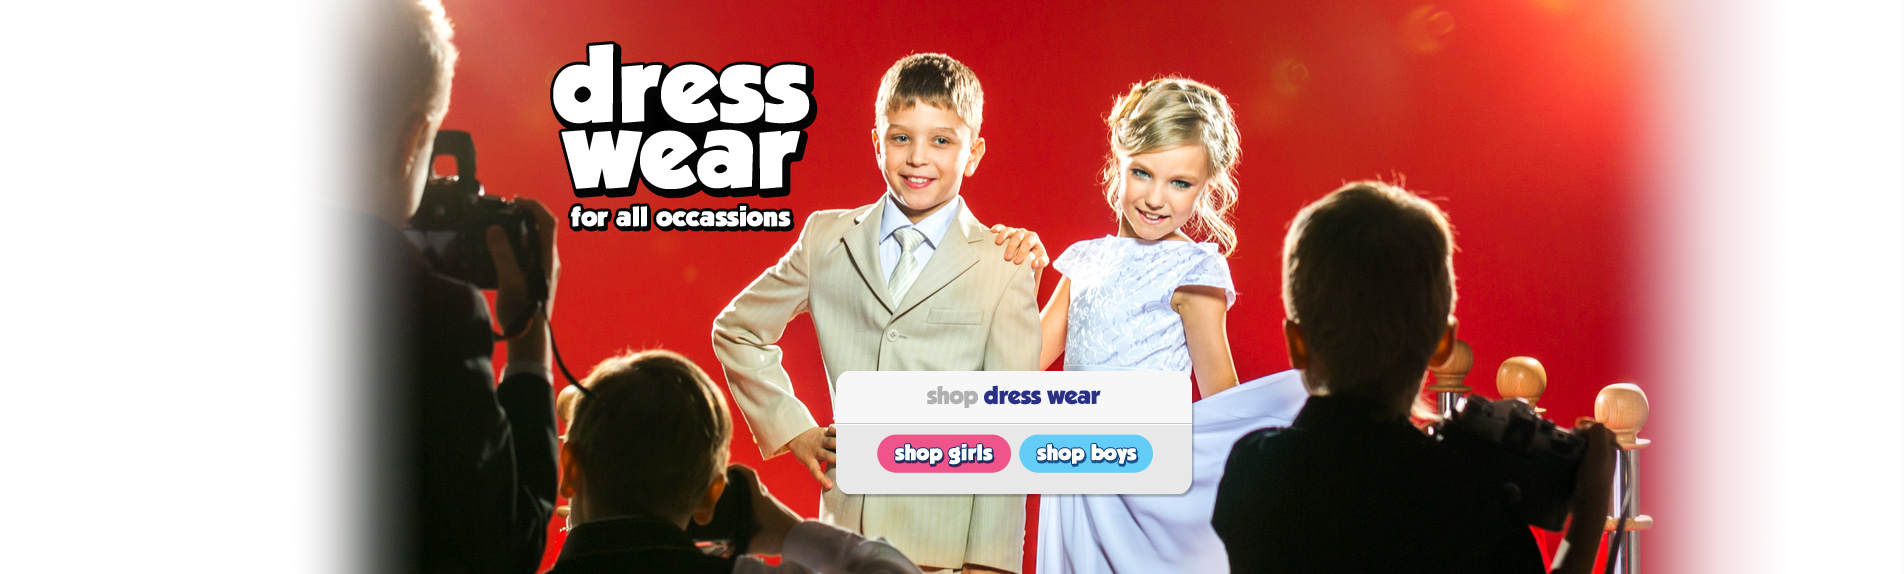 Shop Boys and Girls Dress Wear